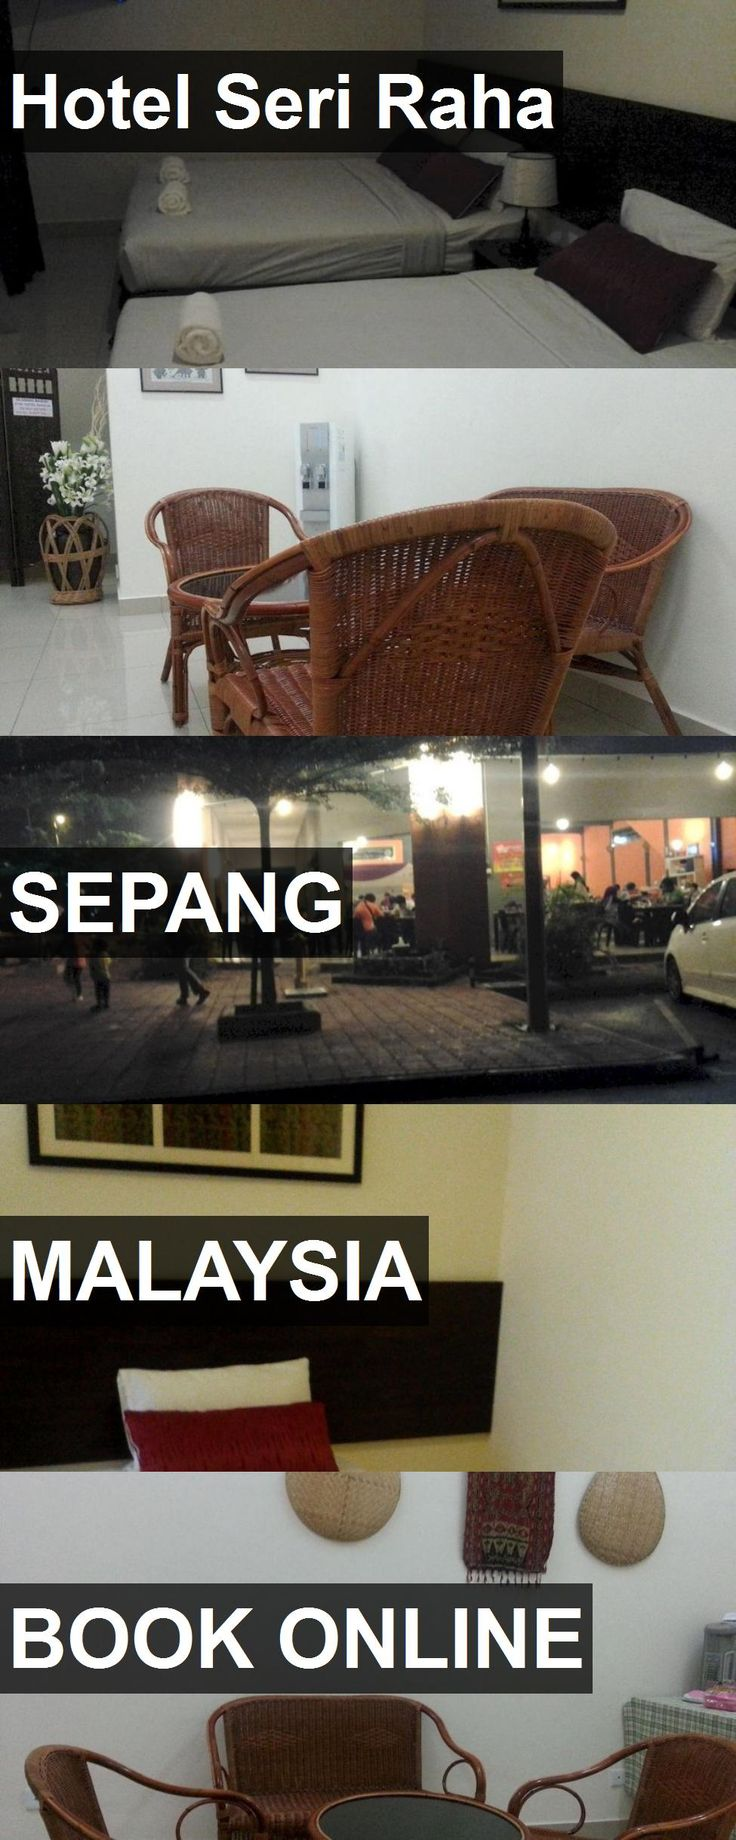 Hotel Seri Raha in Sepang, Malaysia. For more information, photos, reviews and best prices please follow the link. #Malaysia #Sepang #travel #vacation #hotel